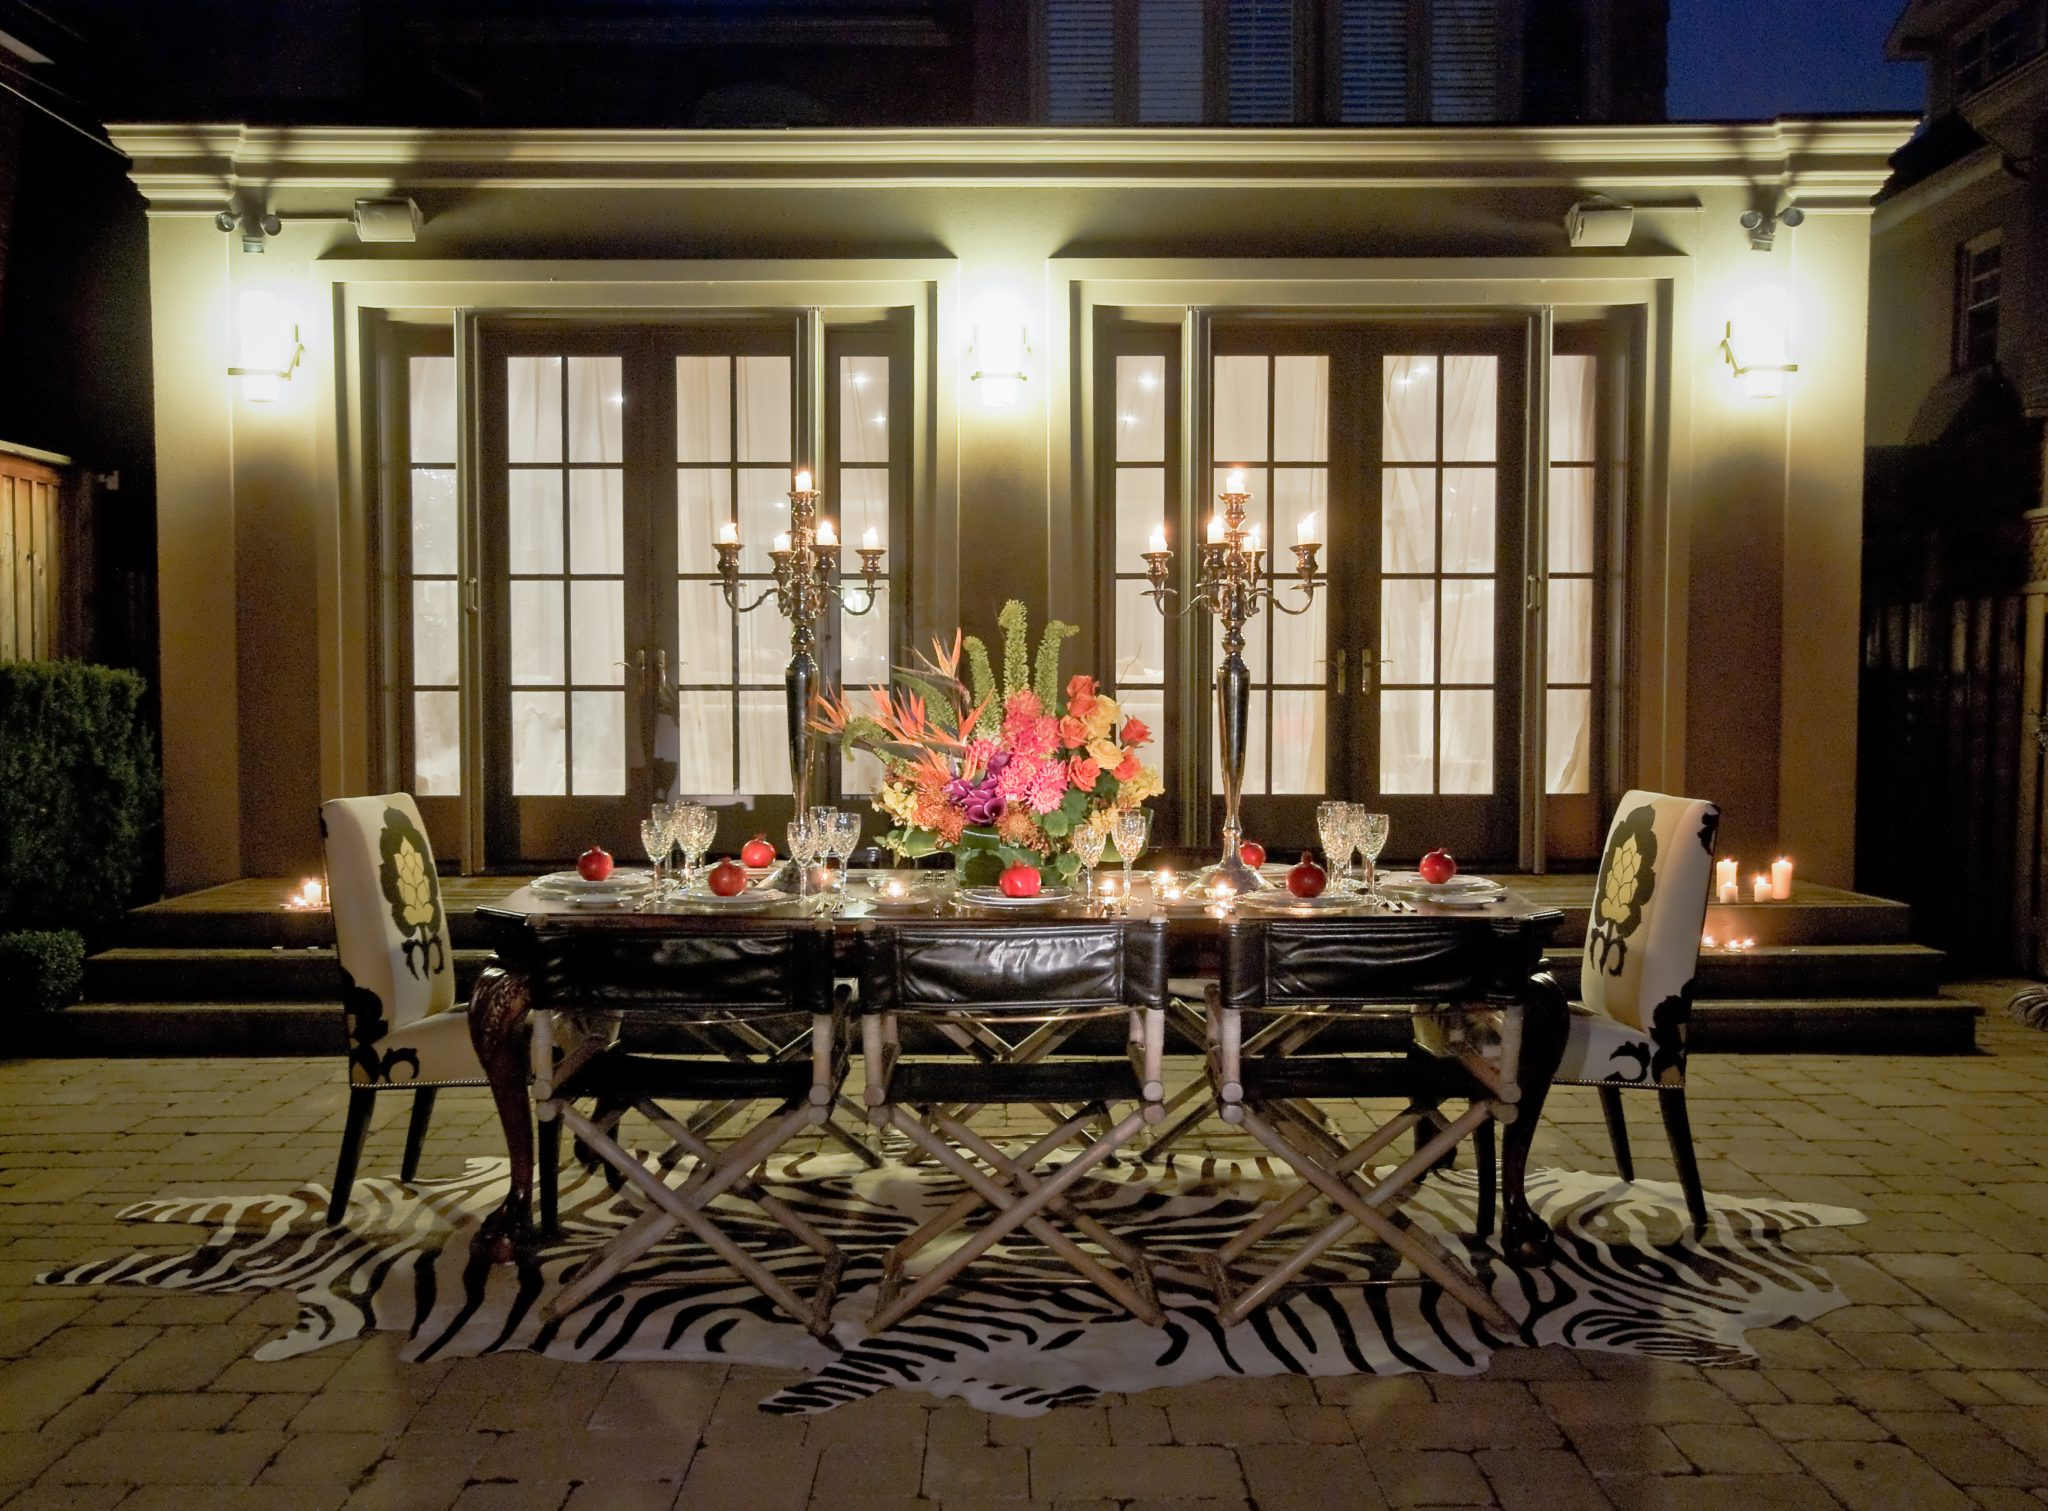 Glamorous outdoor dining room by Lucid Interior Design Inc.